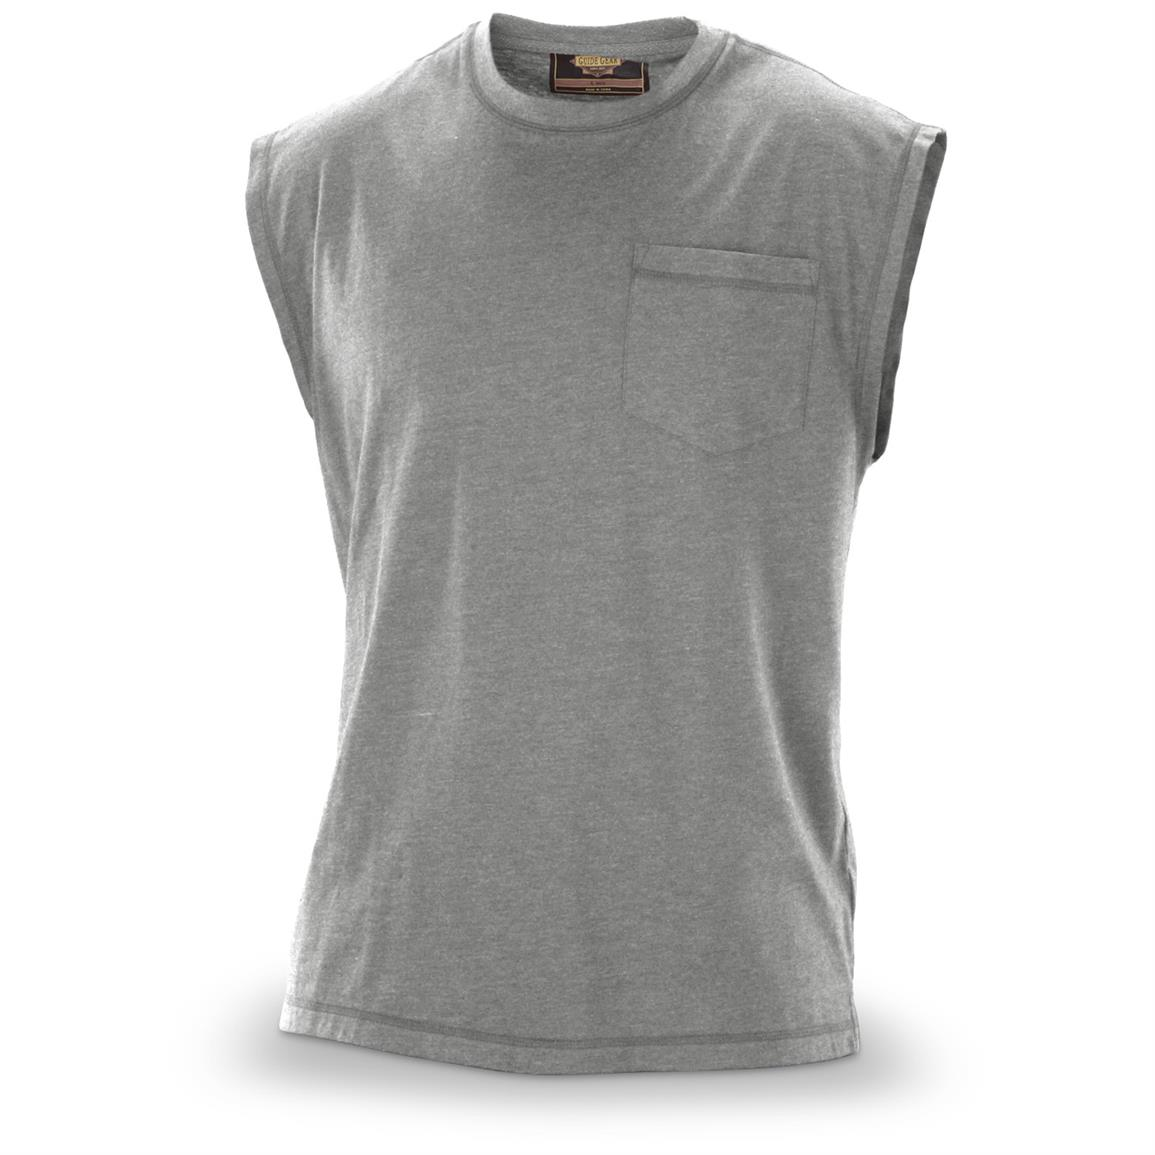 Guide Gear Men's Work Sleeveless Pocket T-Shirt, Gray